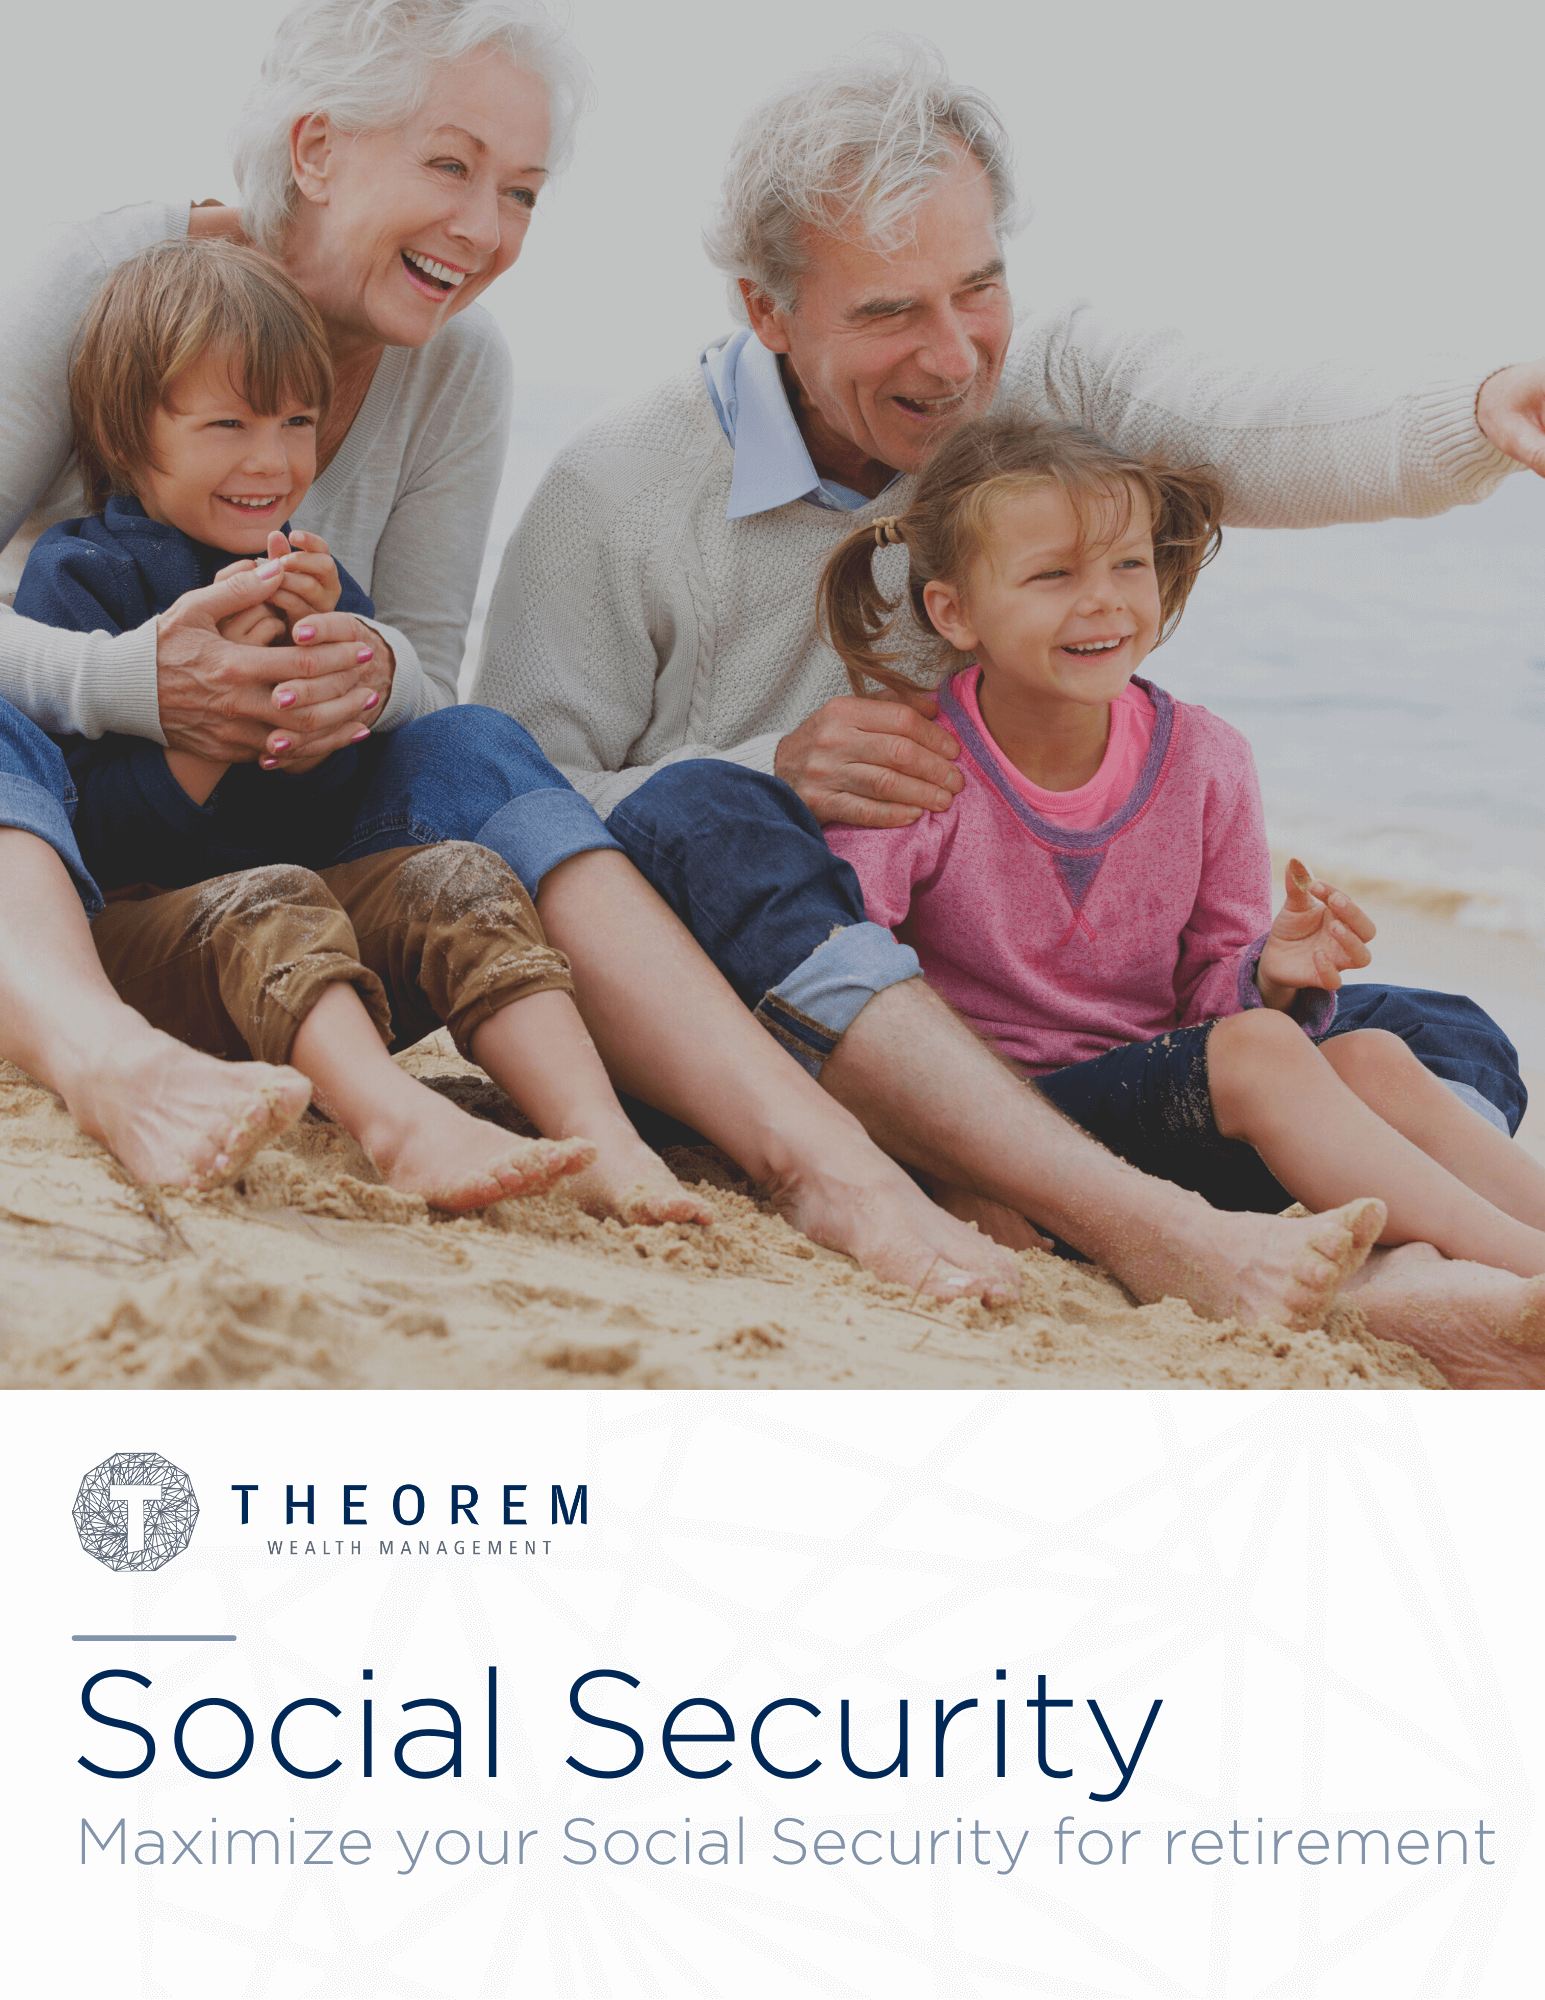 Maximize Your Social Security for Retirement